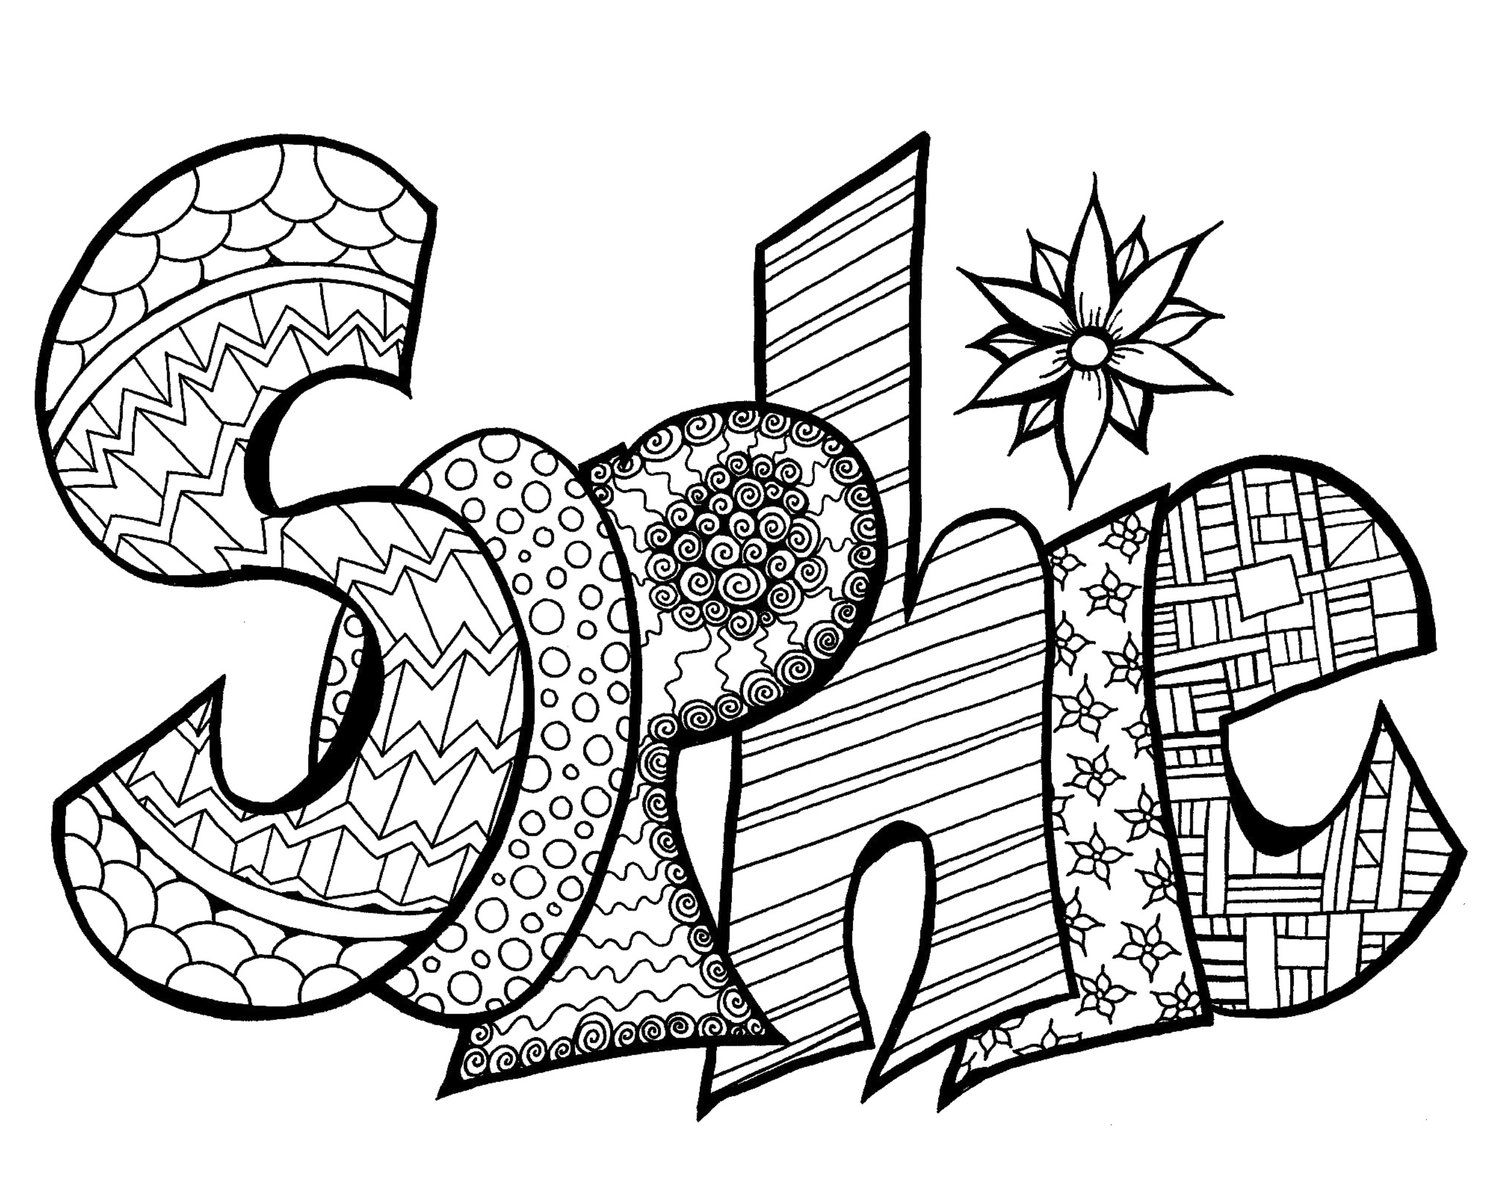 Sophie Free Printable Name Coloring Page Name Coloring Pages Coloring Pages Printable Coloring Pages